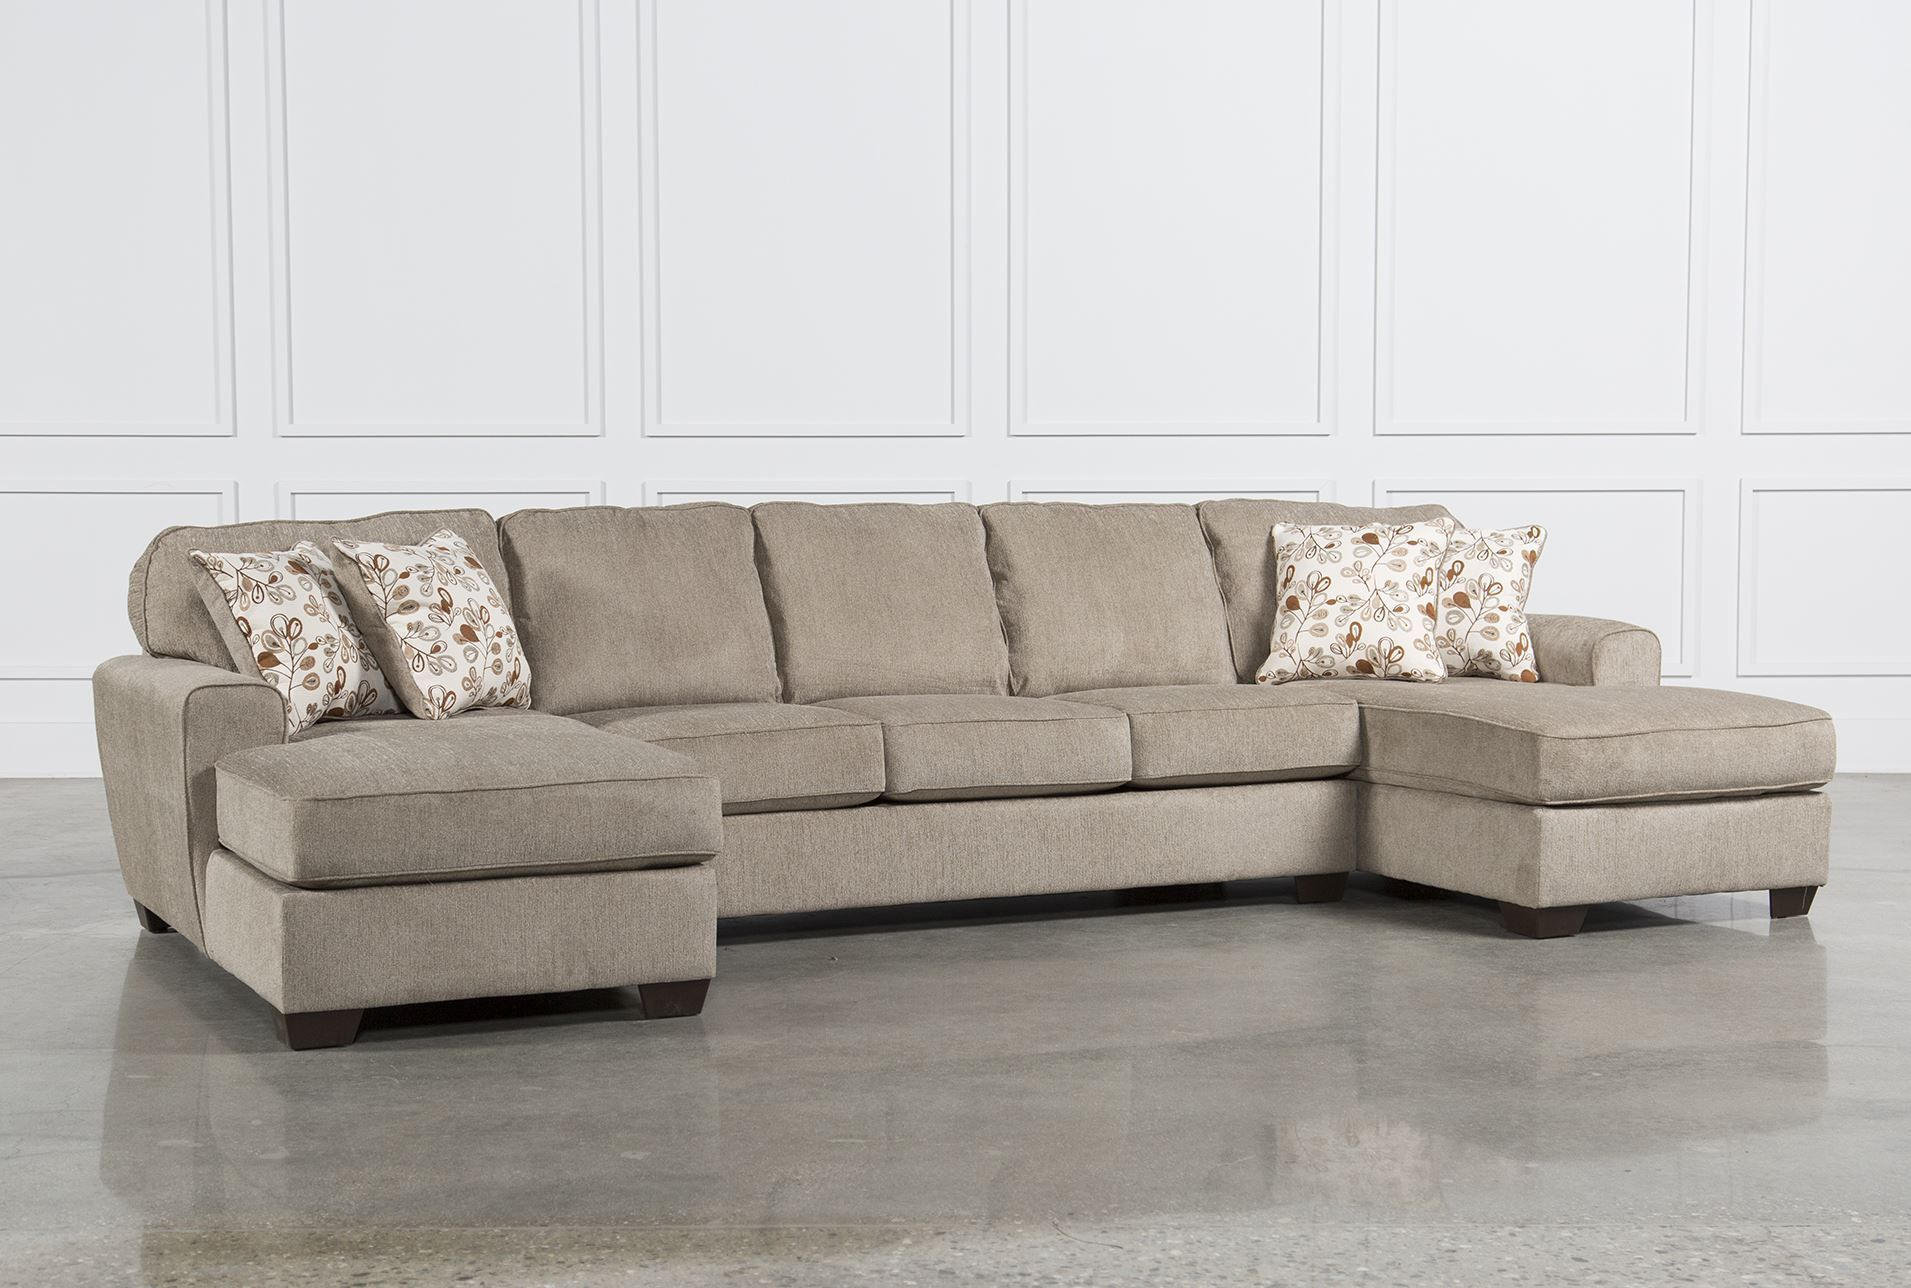 Nice Unique 3 Piece Sectional Sofas 33 For Your Small Home Remodel Ideas  With 3 Piece